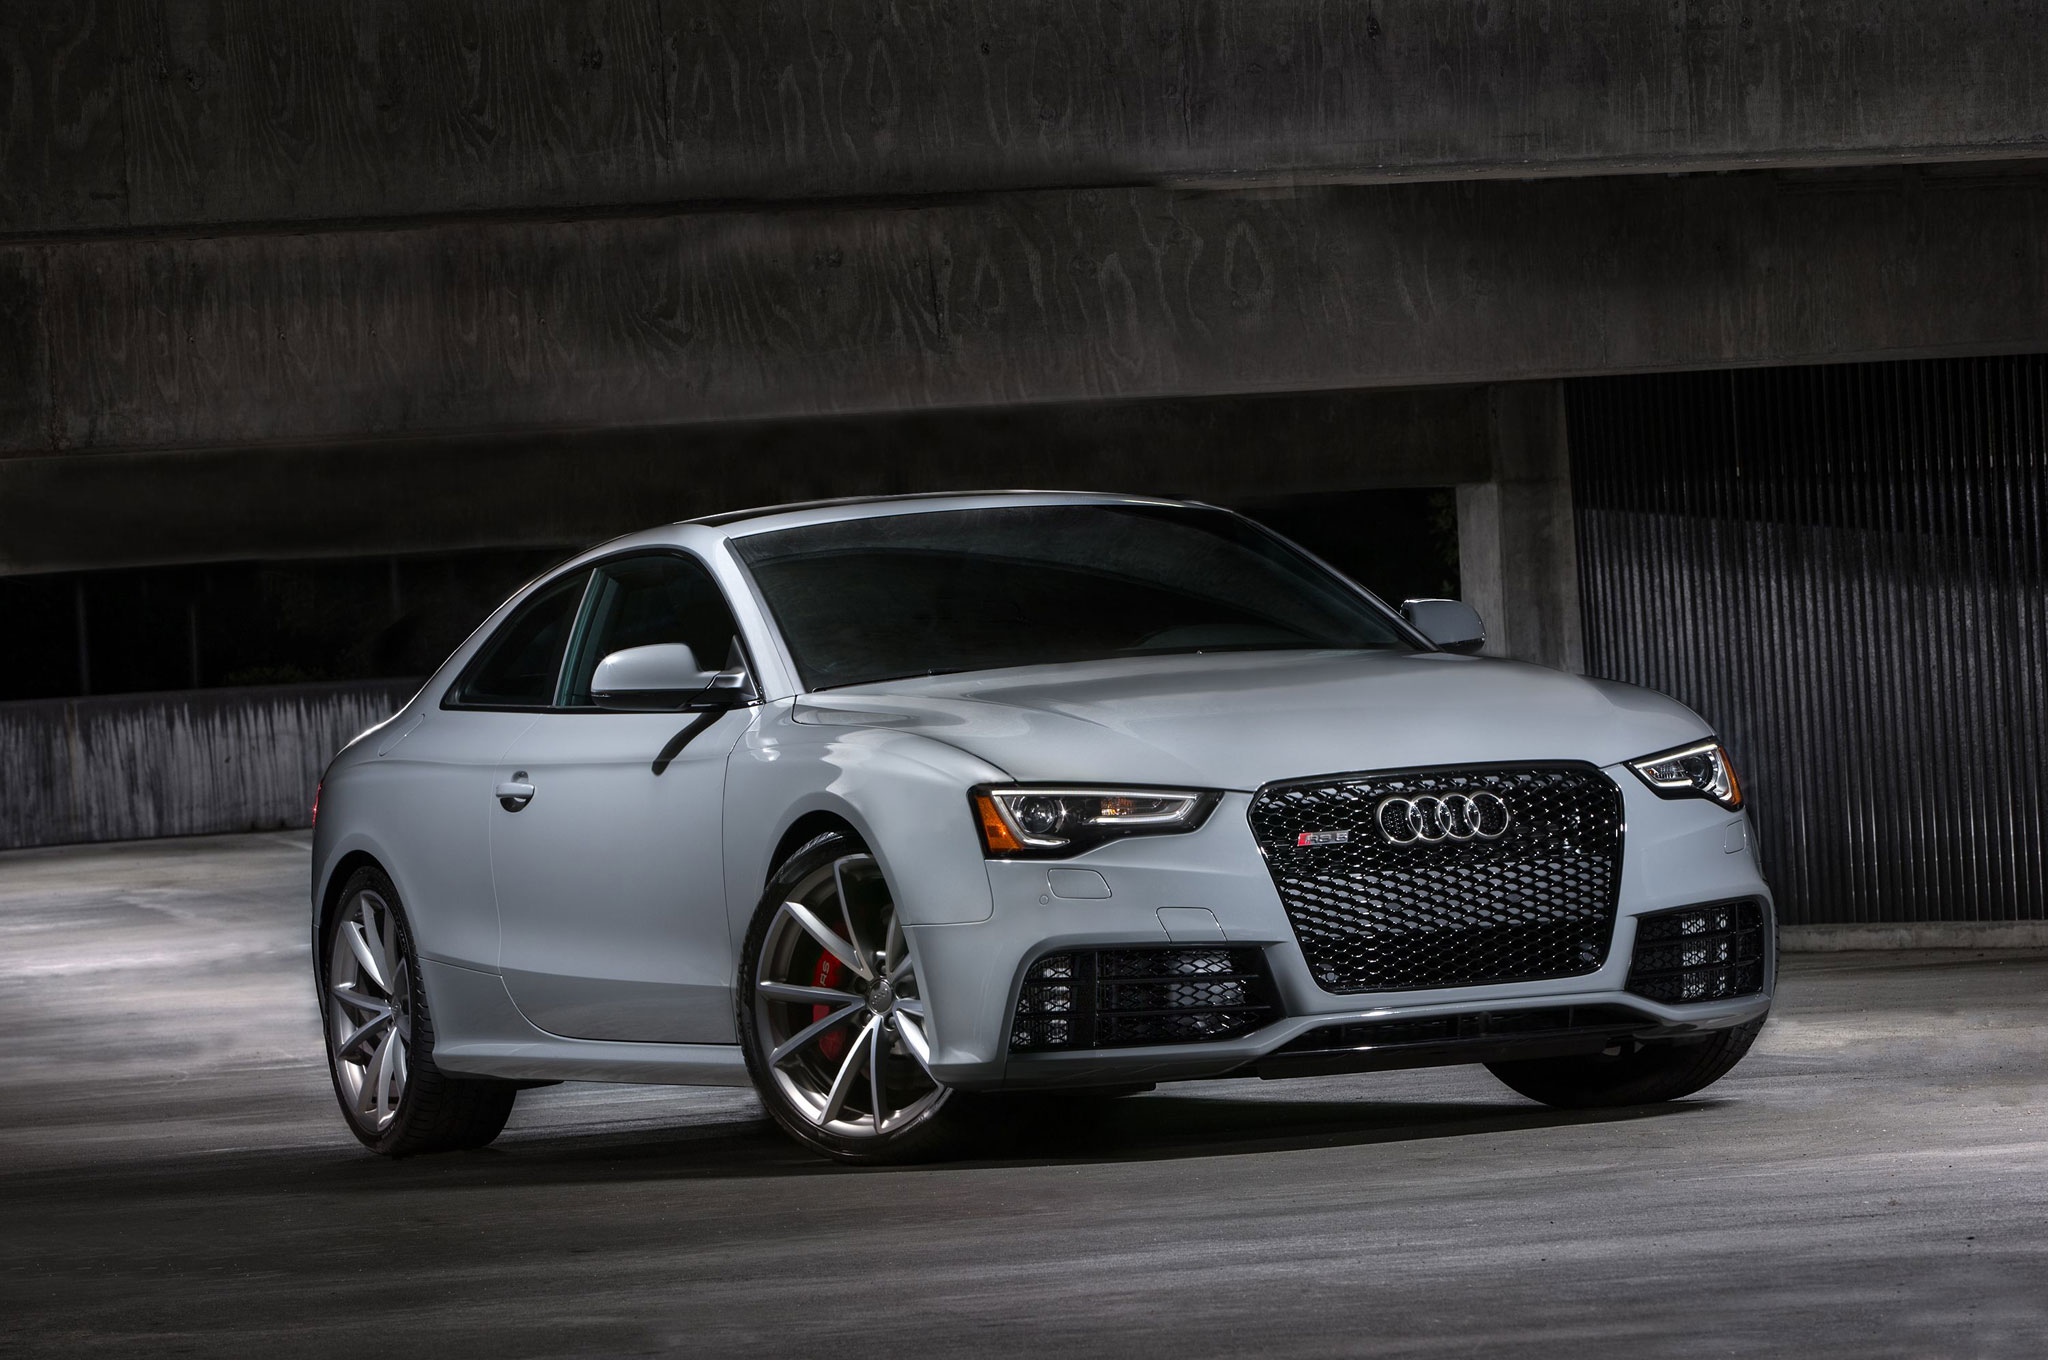 2015 Audi RS 5 Coupe photo - 2